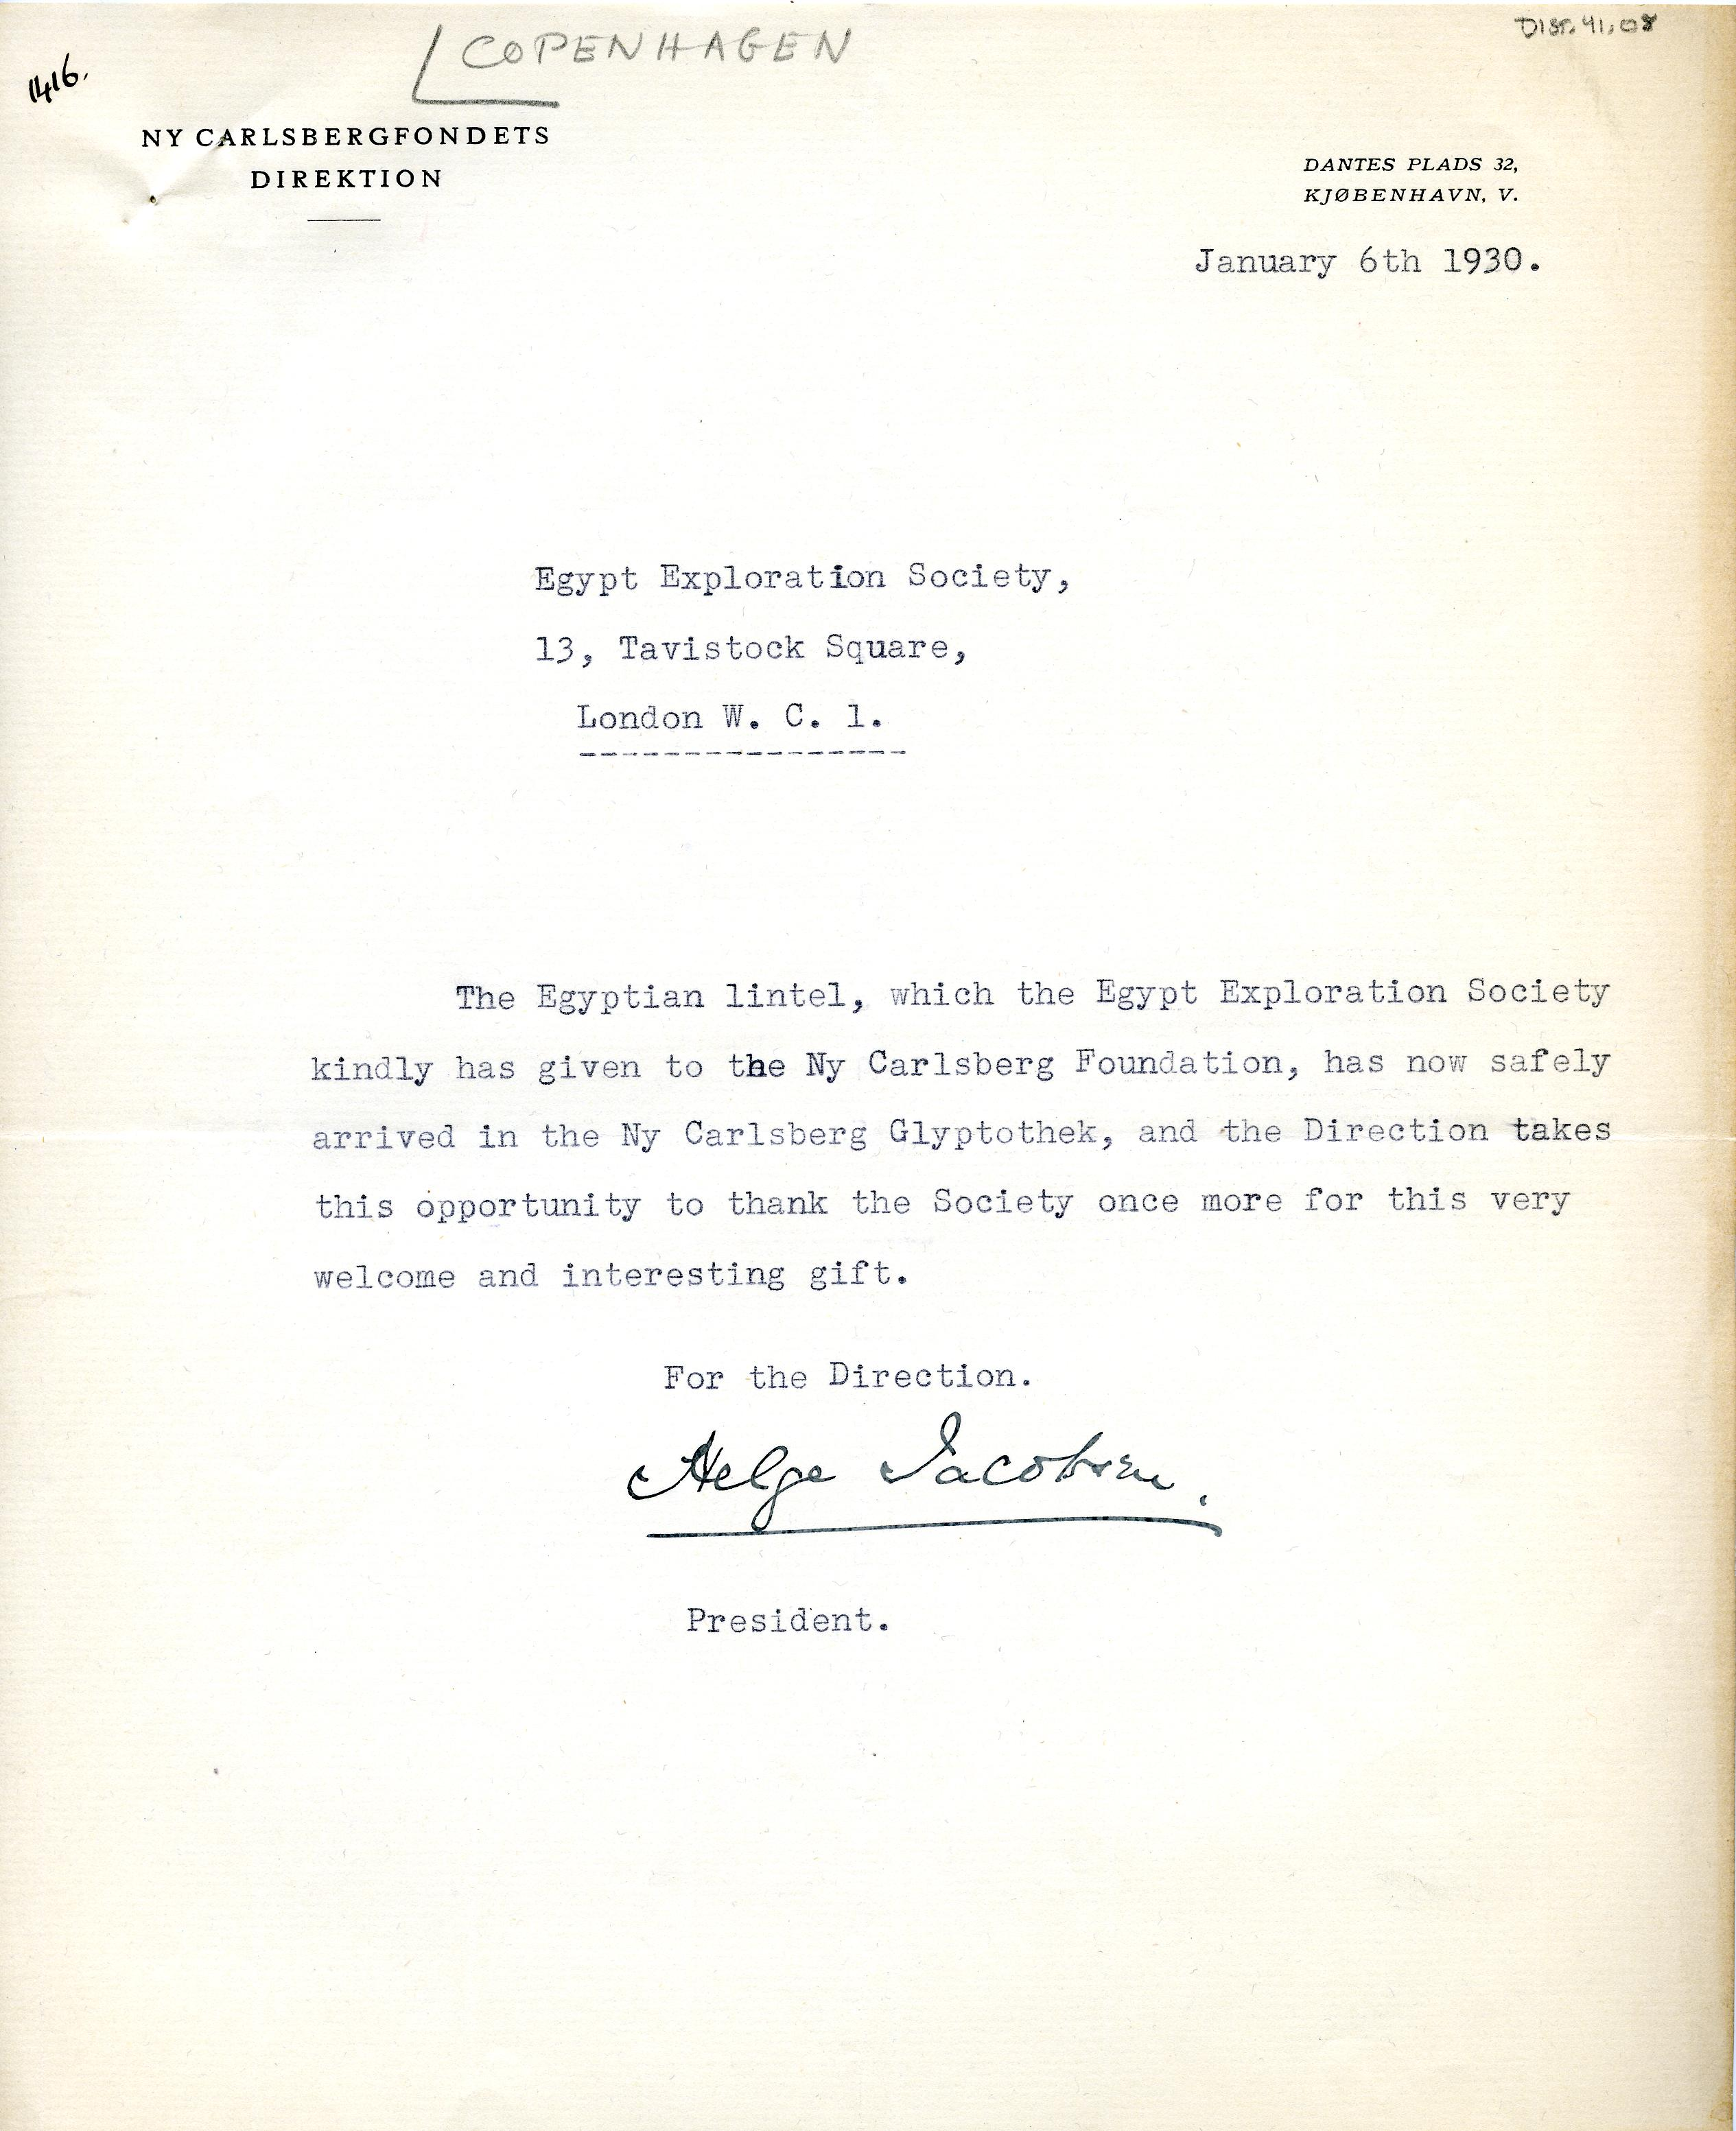 1922-76 Miscellaneous correspondence with museums DIST.41.08